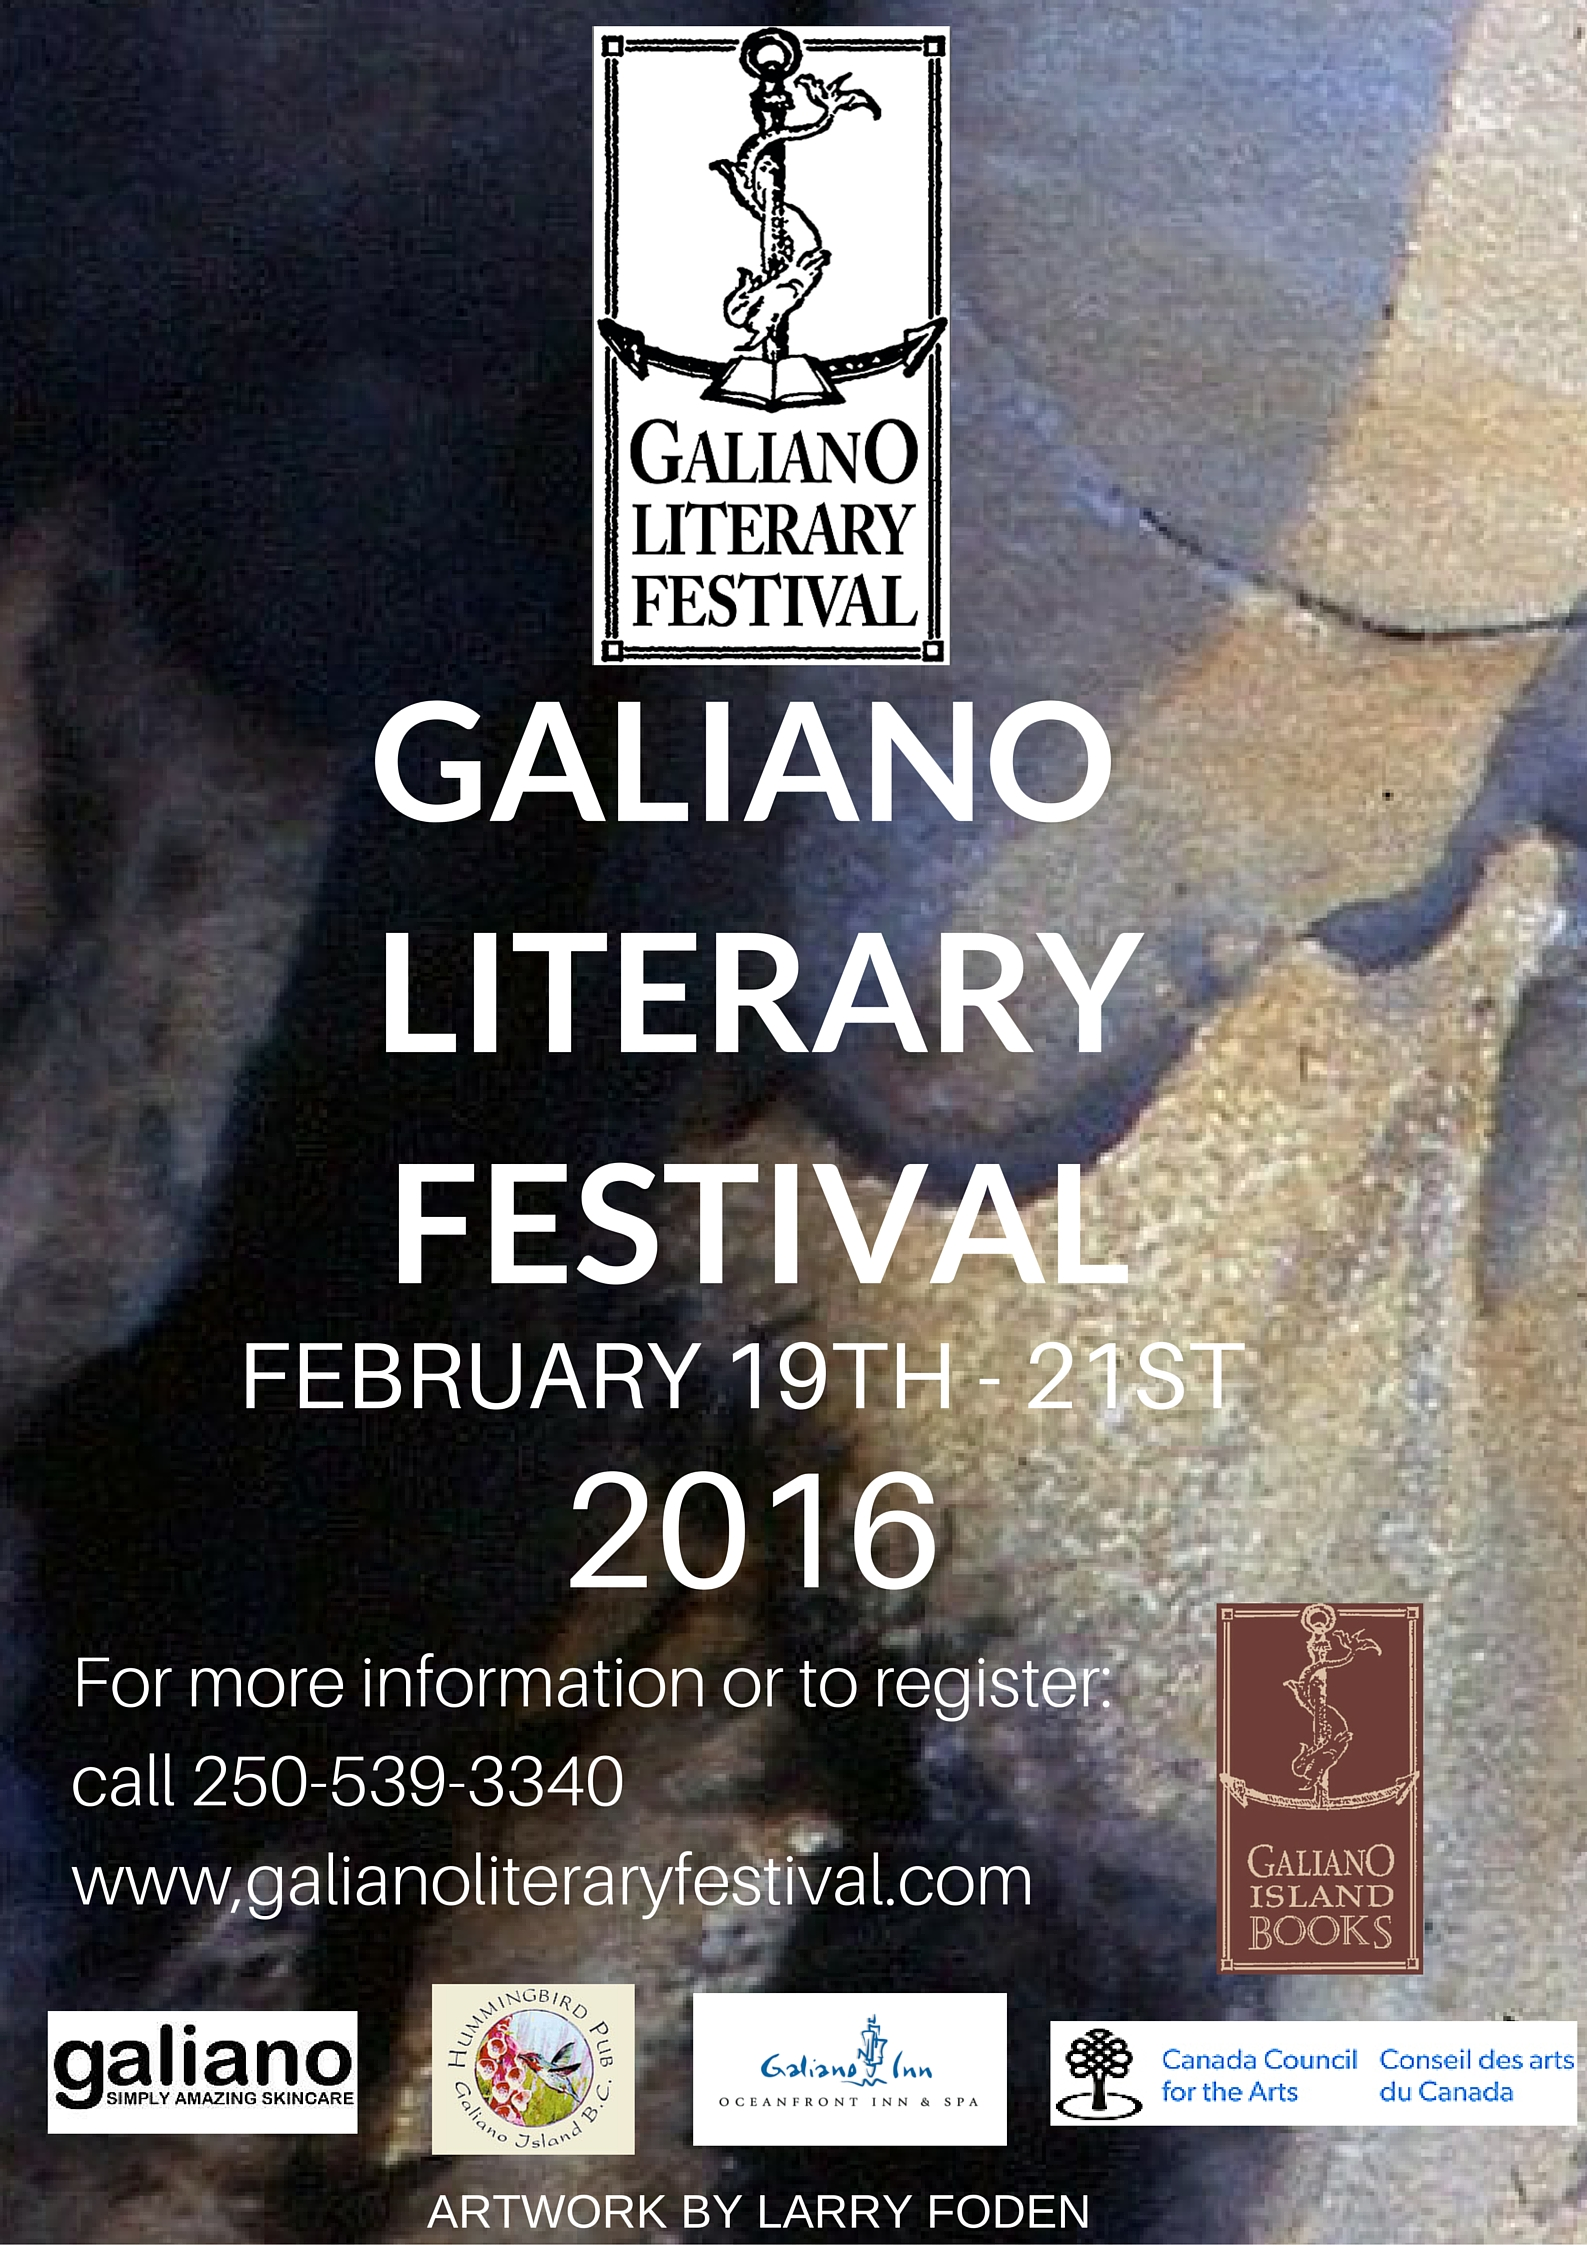 GALIANO ISLAND BOOKS PRESENTS